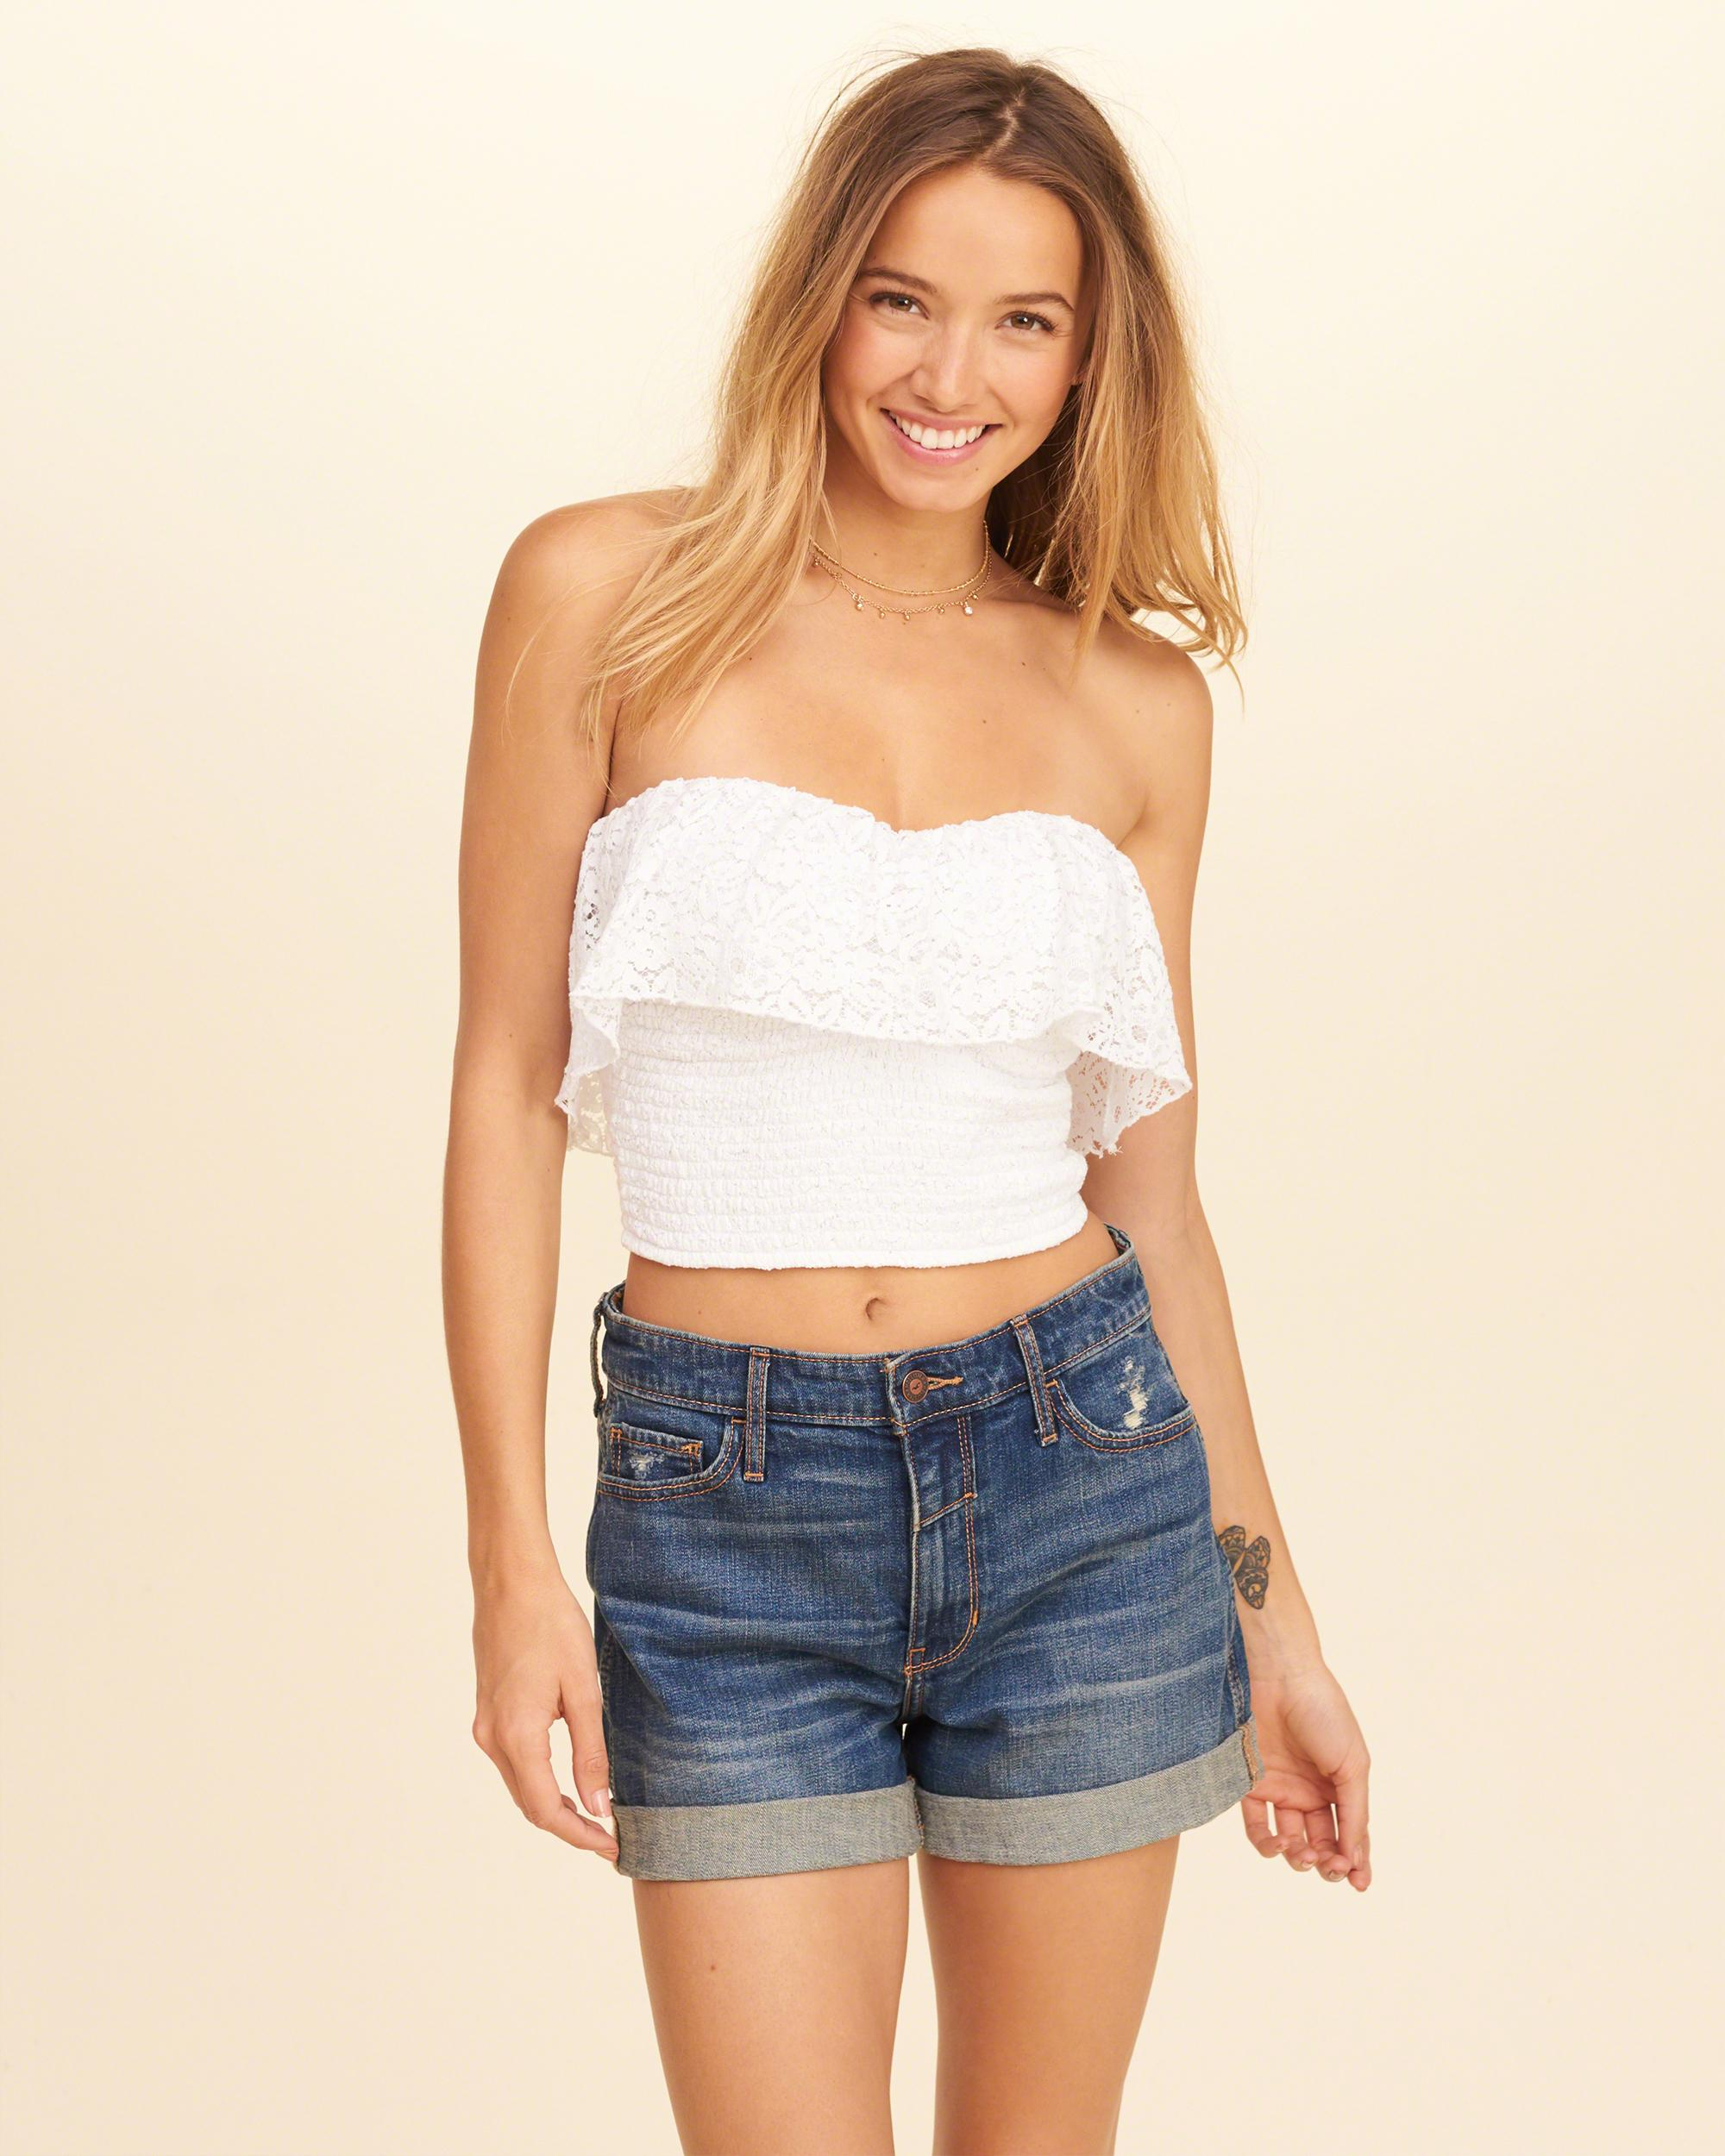 d80501b2b2 Hollister Smocked Ruffle Crop Tube Top in White - Lyst